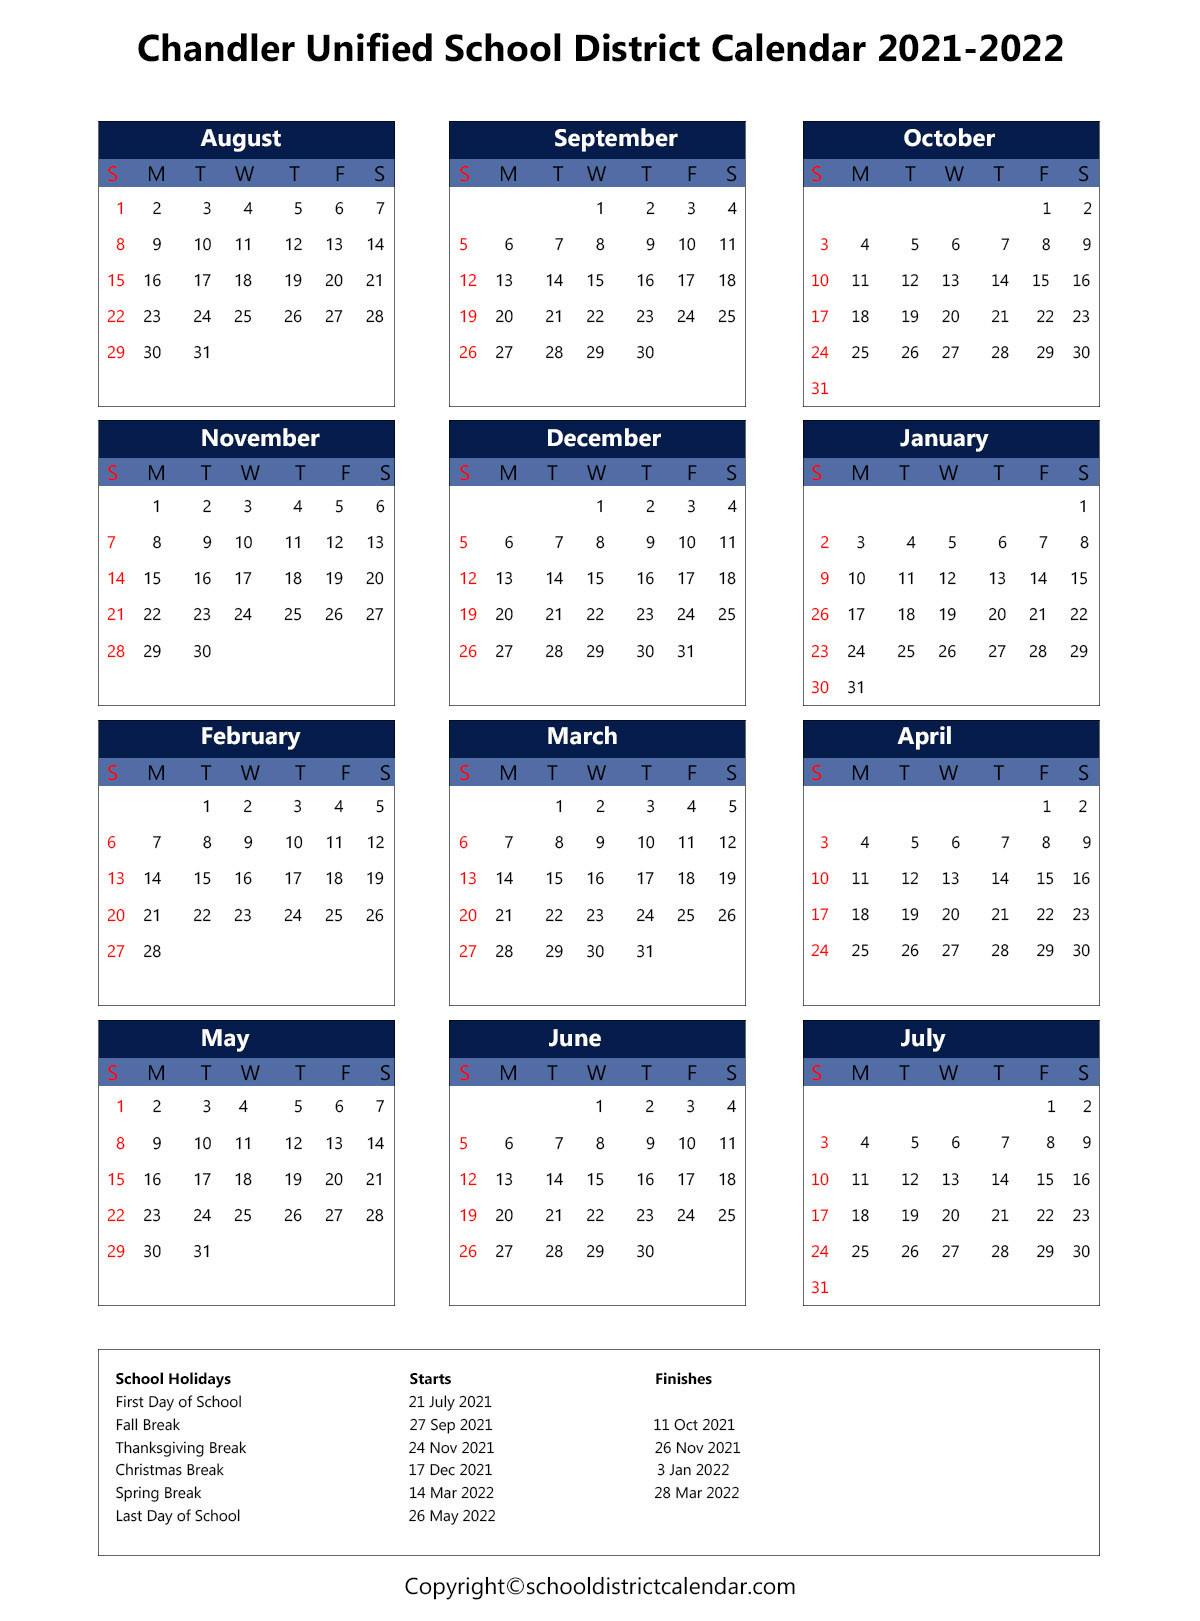 Chandler Unified School District Calendar 2021